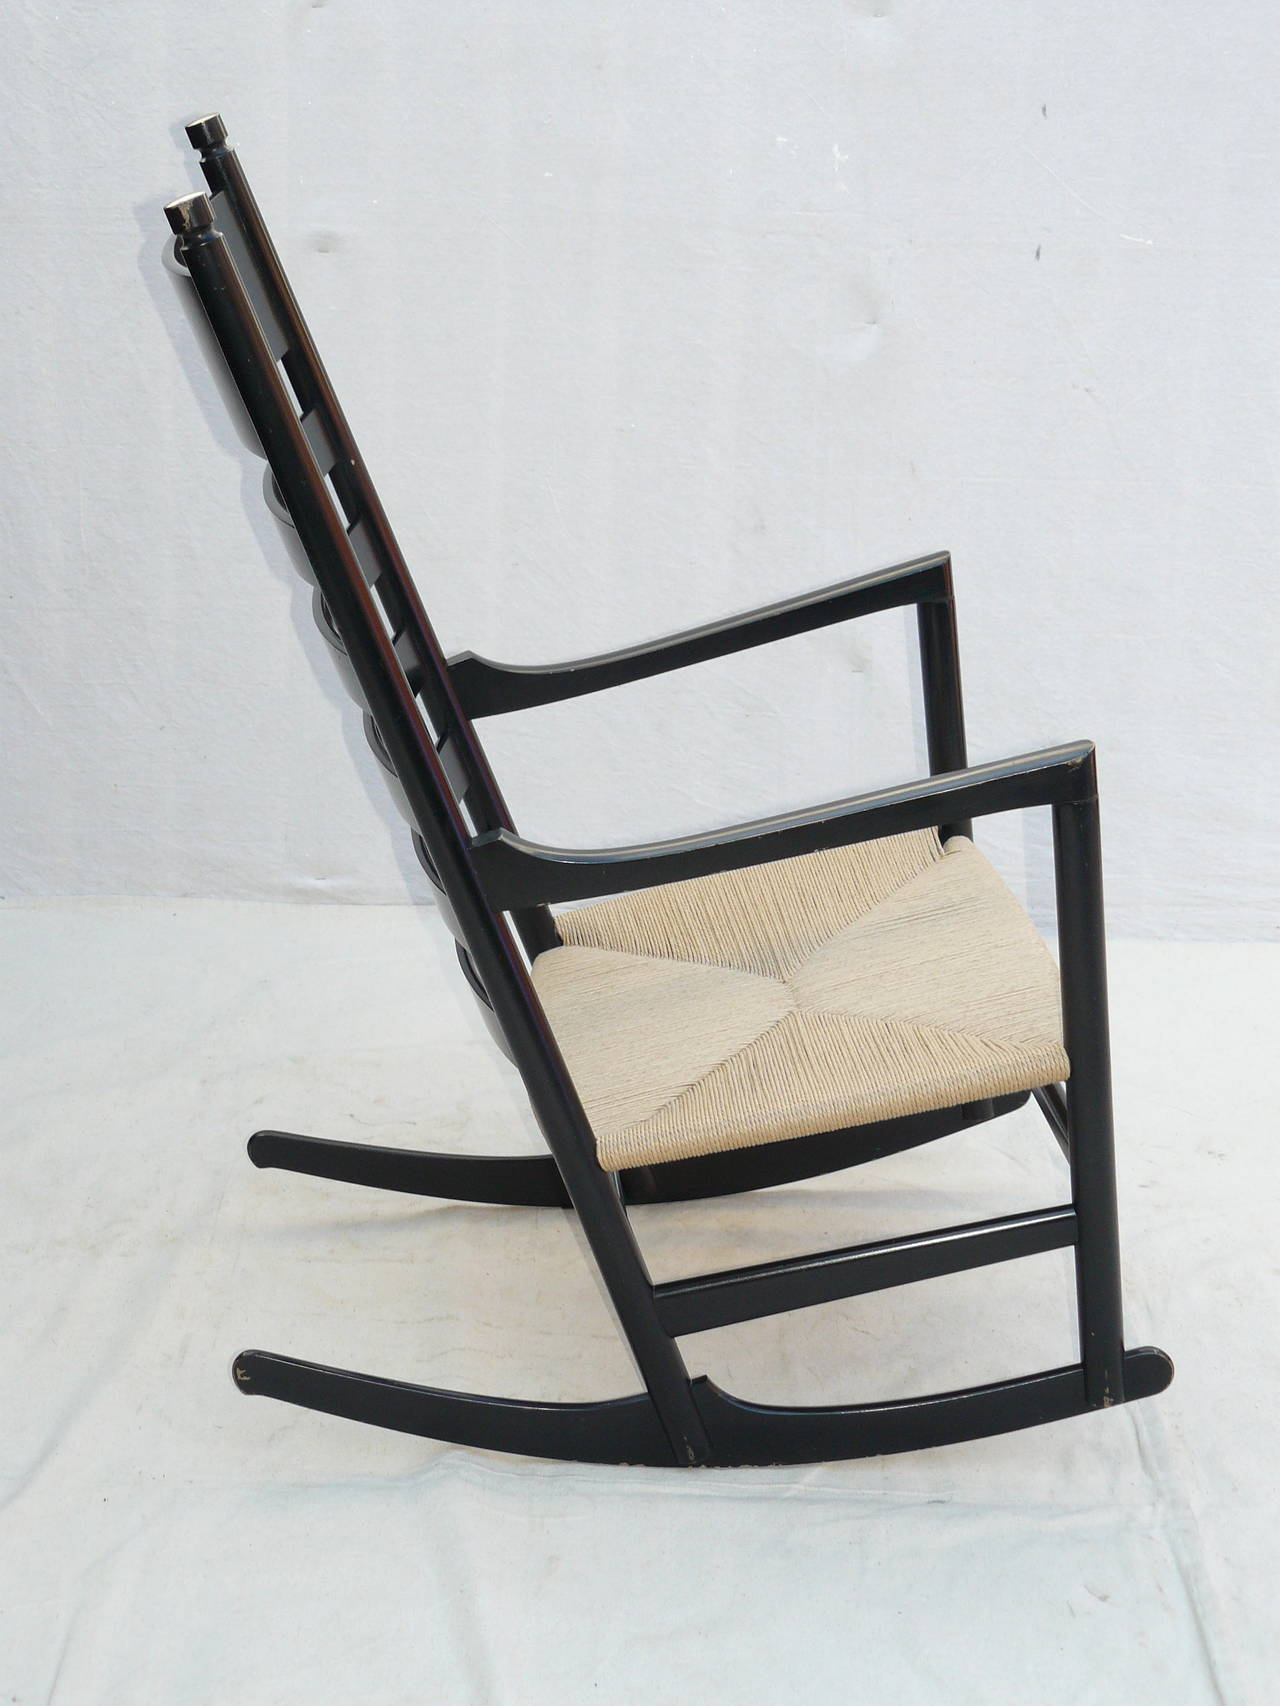 Shaker Rocking Chair By Hans J Wegner Image 3 Pictures To Pin On . Full resolution‎  portraiture, nominally Width 1280 Height 1706 pixels, portraiture with #7D6C4E.